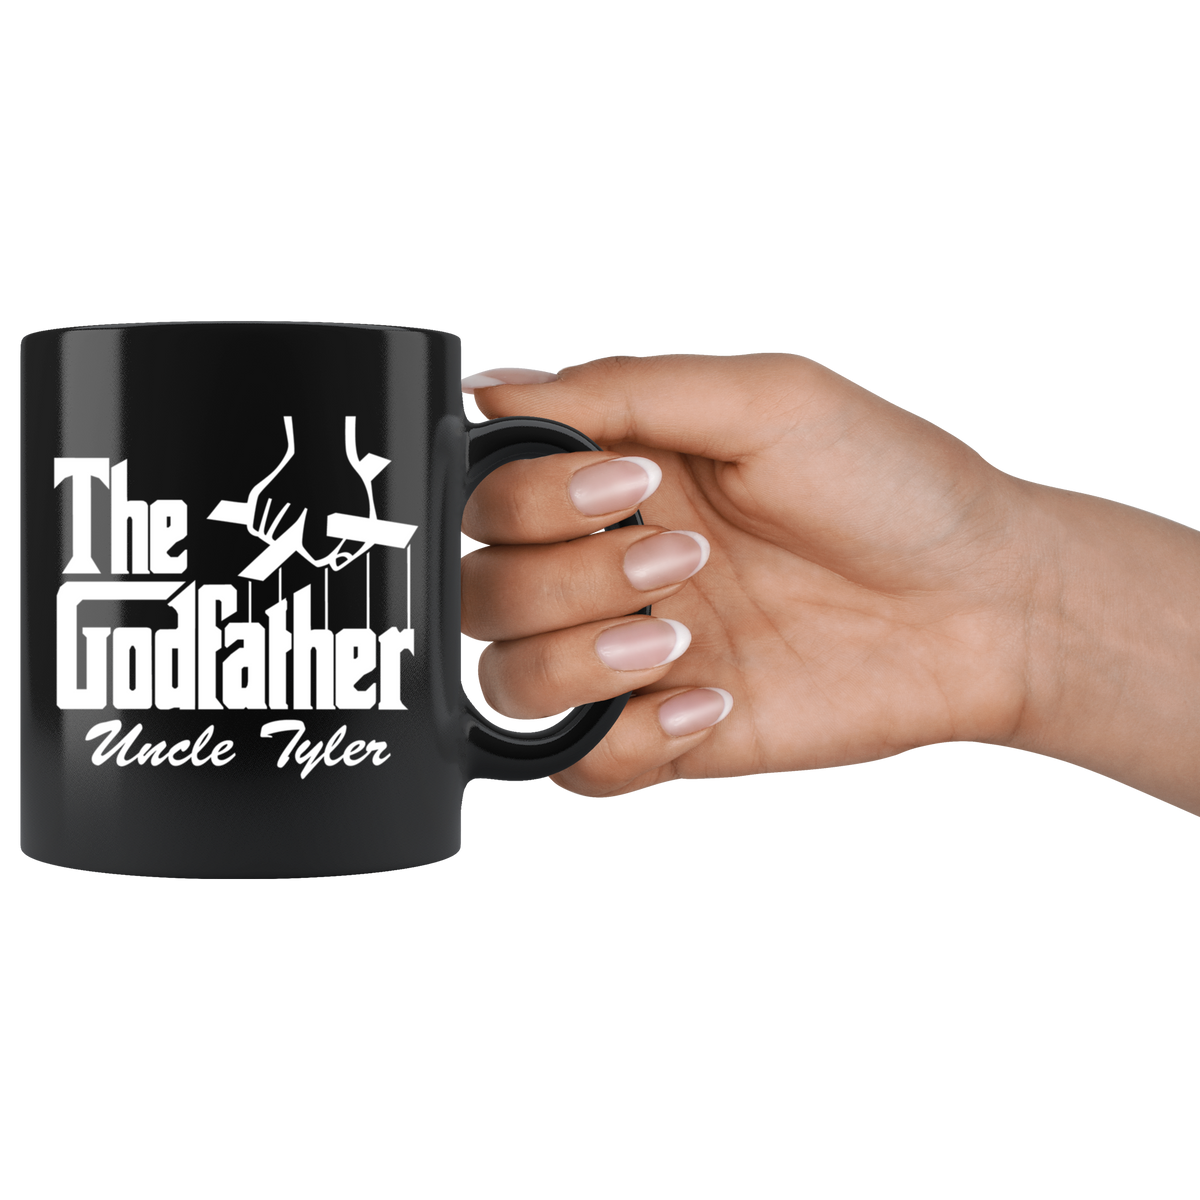 Custom Godfather Mug for Uncle